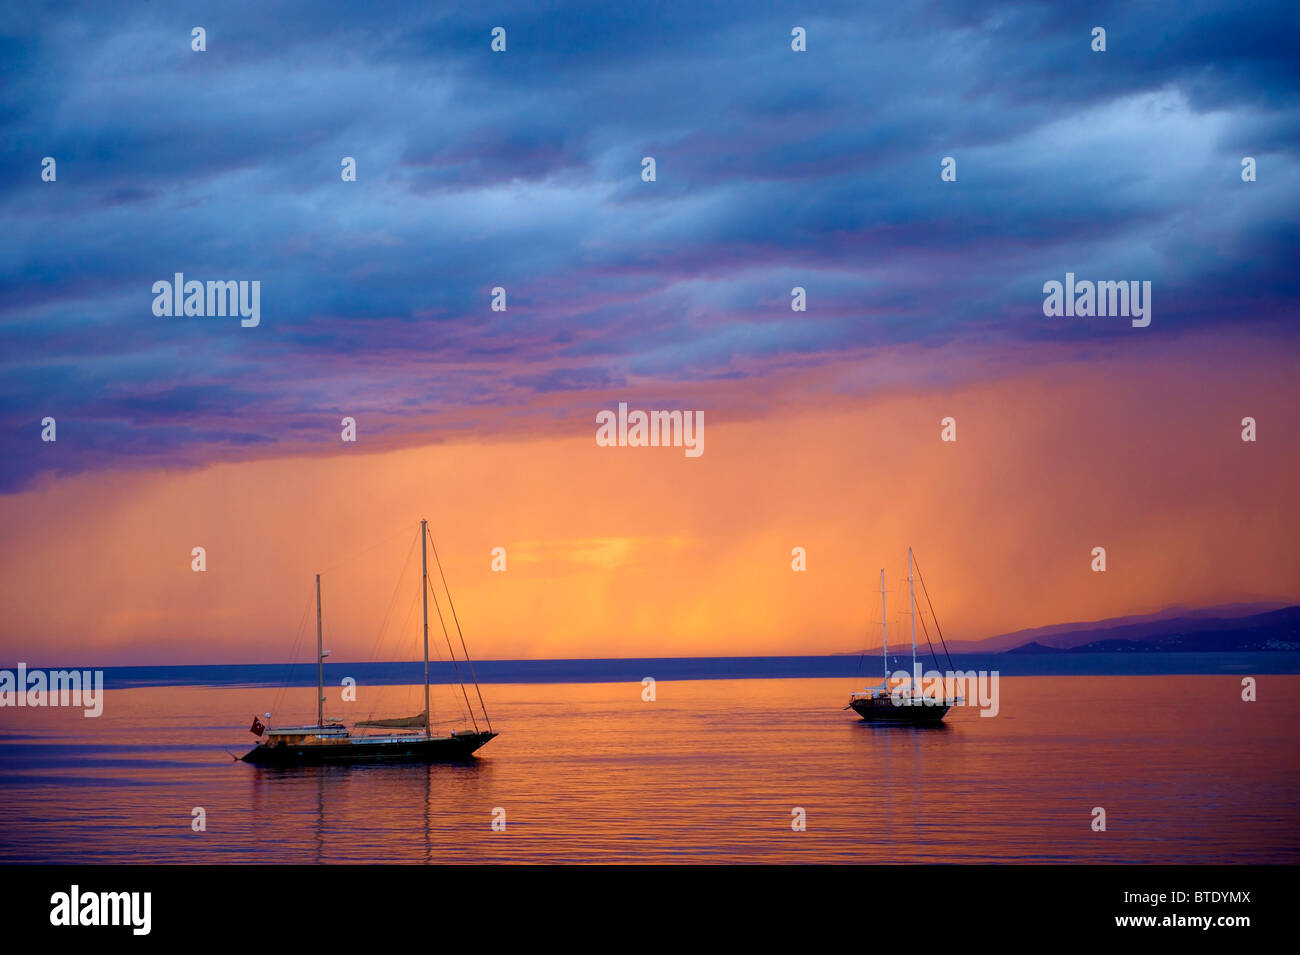 Sailing boats at sunset off Mykonos, Cyclades Isalnd, Greece - Stock Image